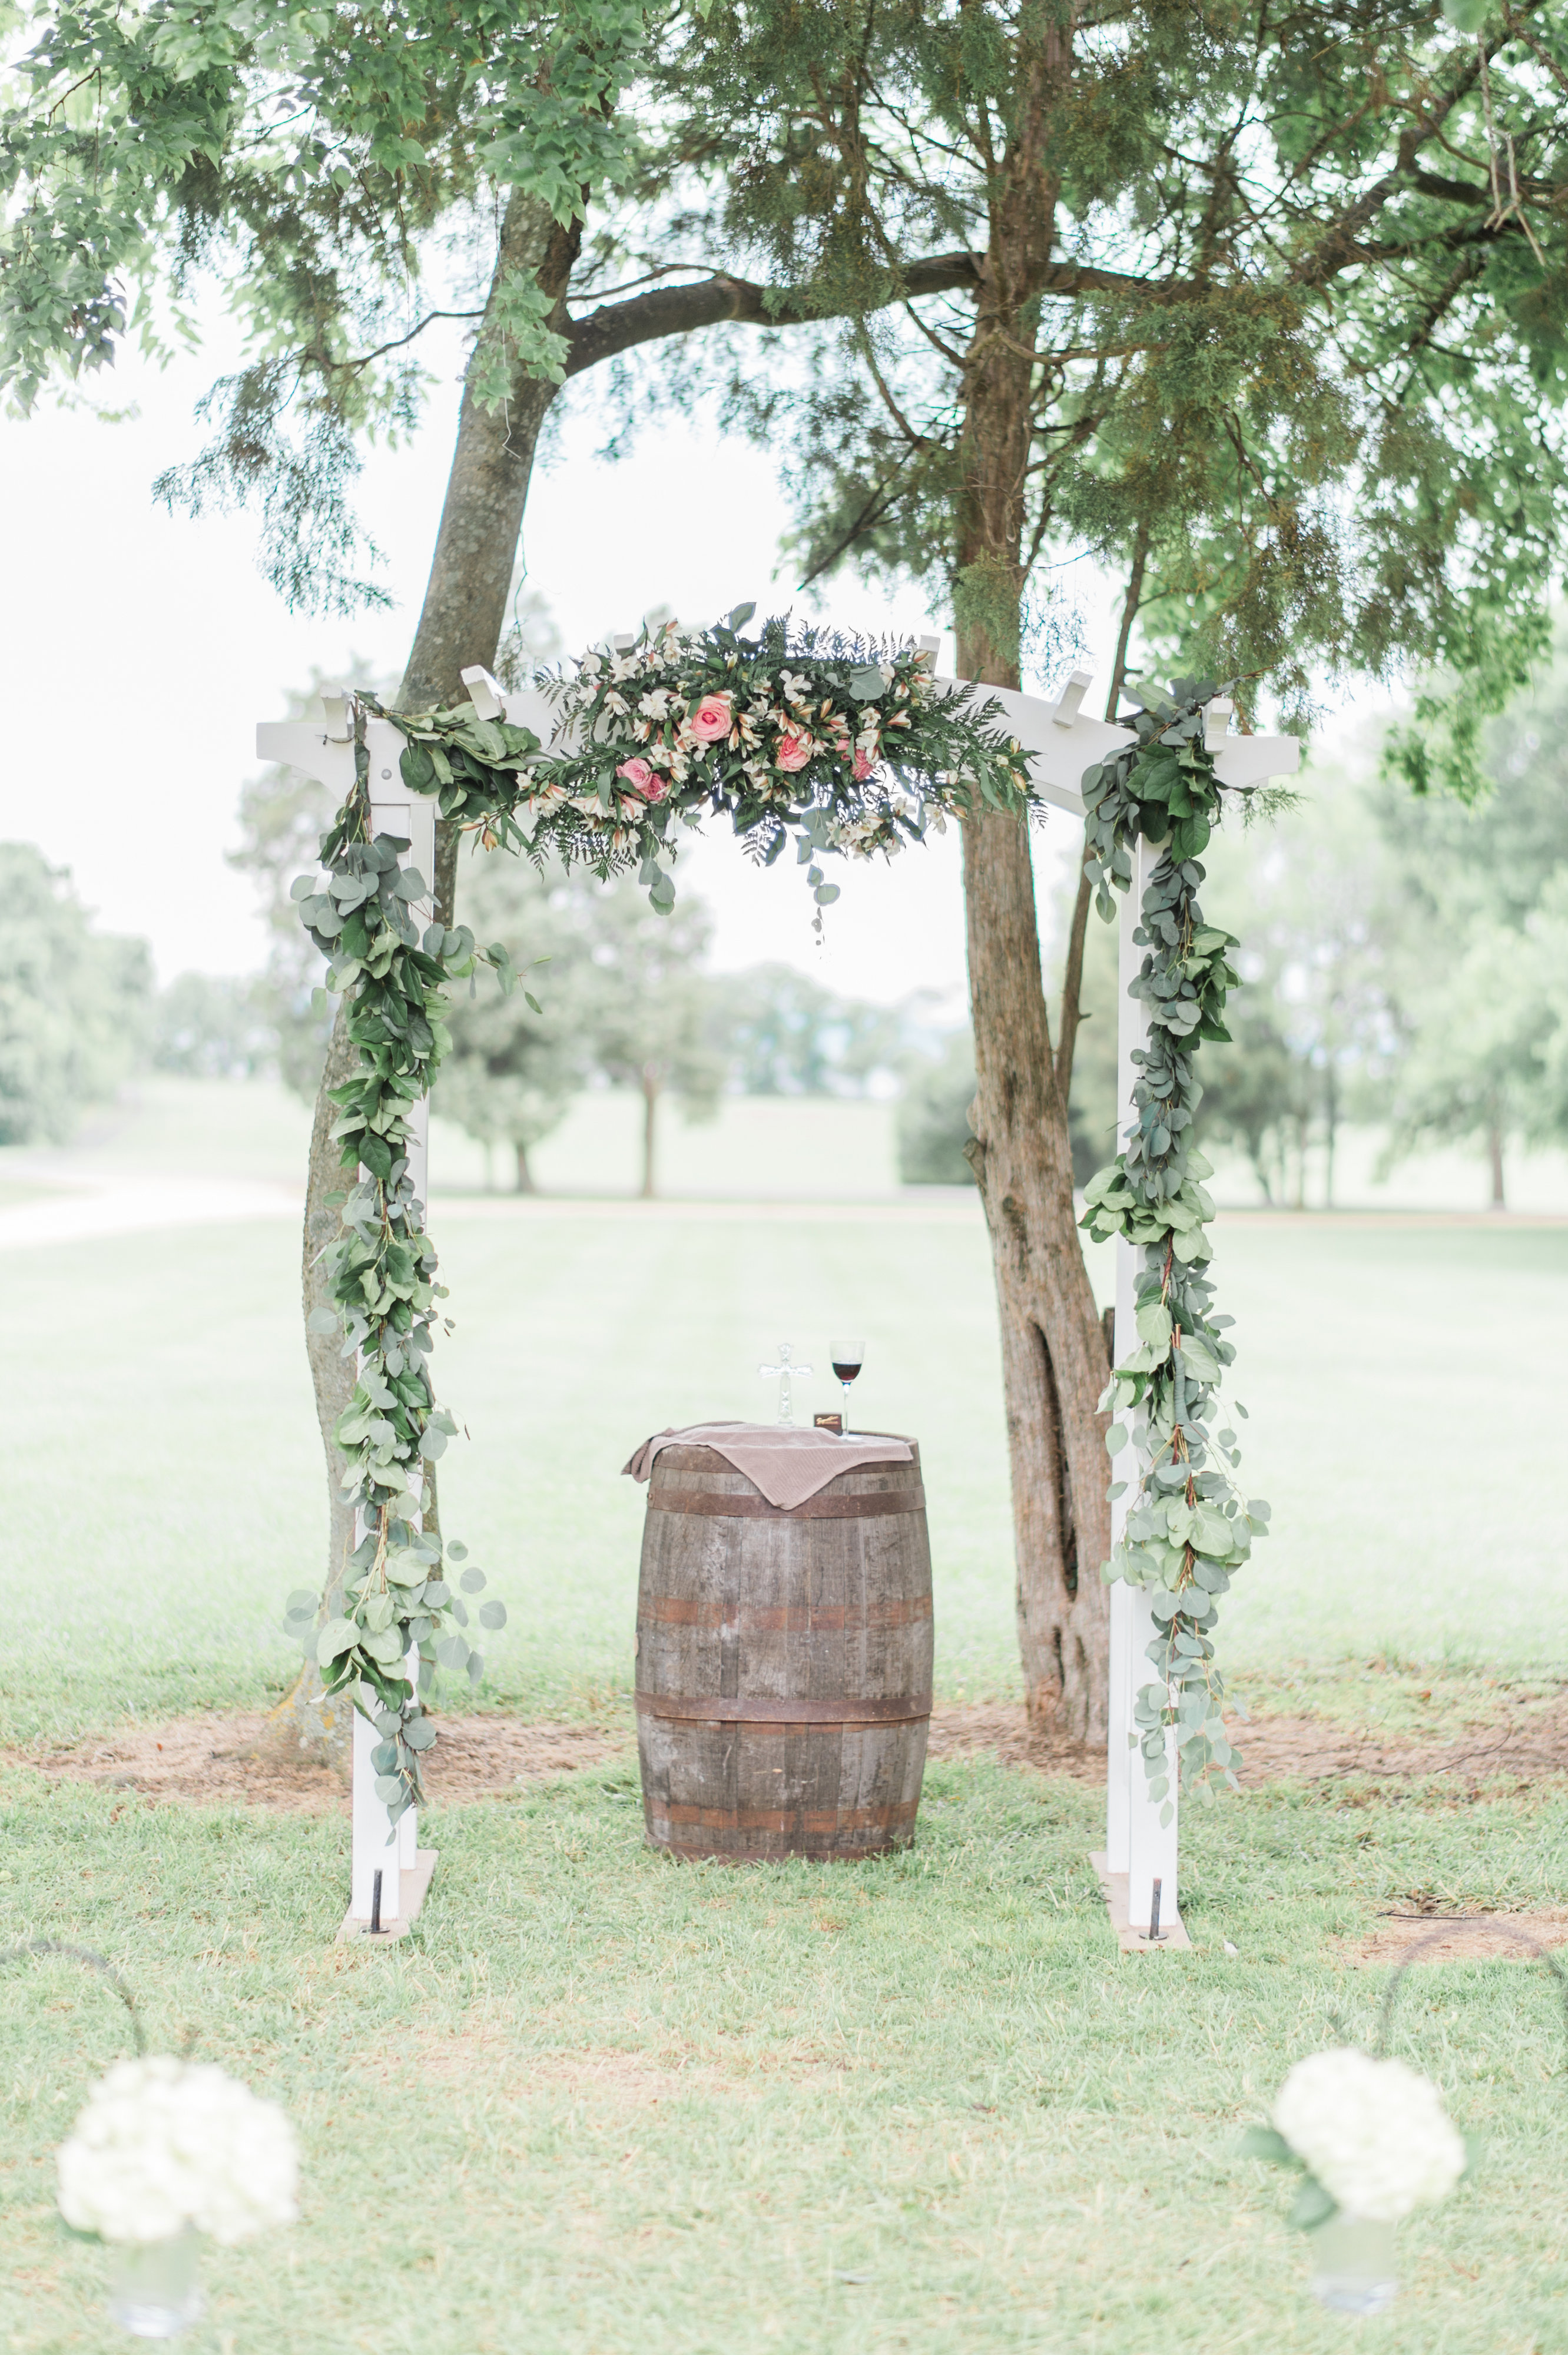 Romantic Rustic Barn Wedding - United With Love